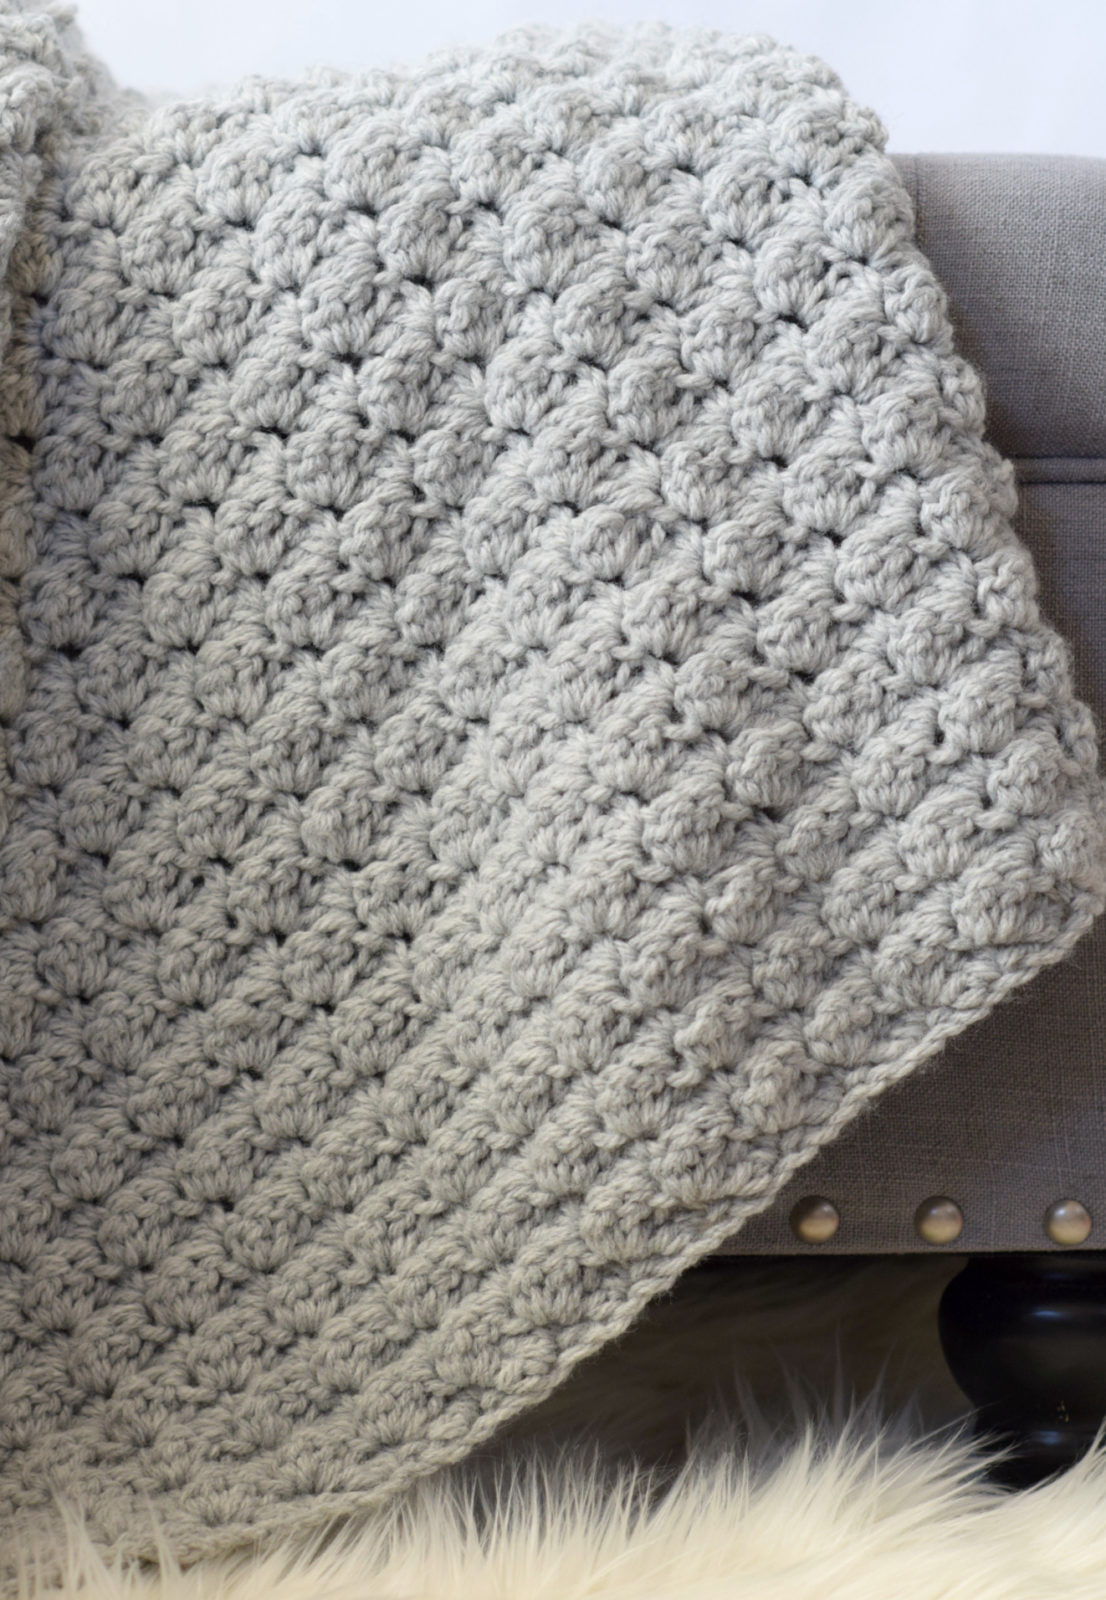 Easy Crochet Baby Blanket Awesome Simple Crocheted Blanket Go to Pattern – Mama In A Stitch Of Great 44 Ideas Easy Crochet Baby Blanket